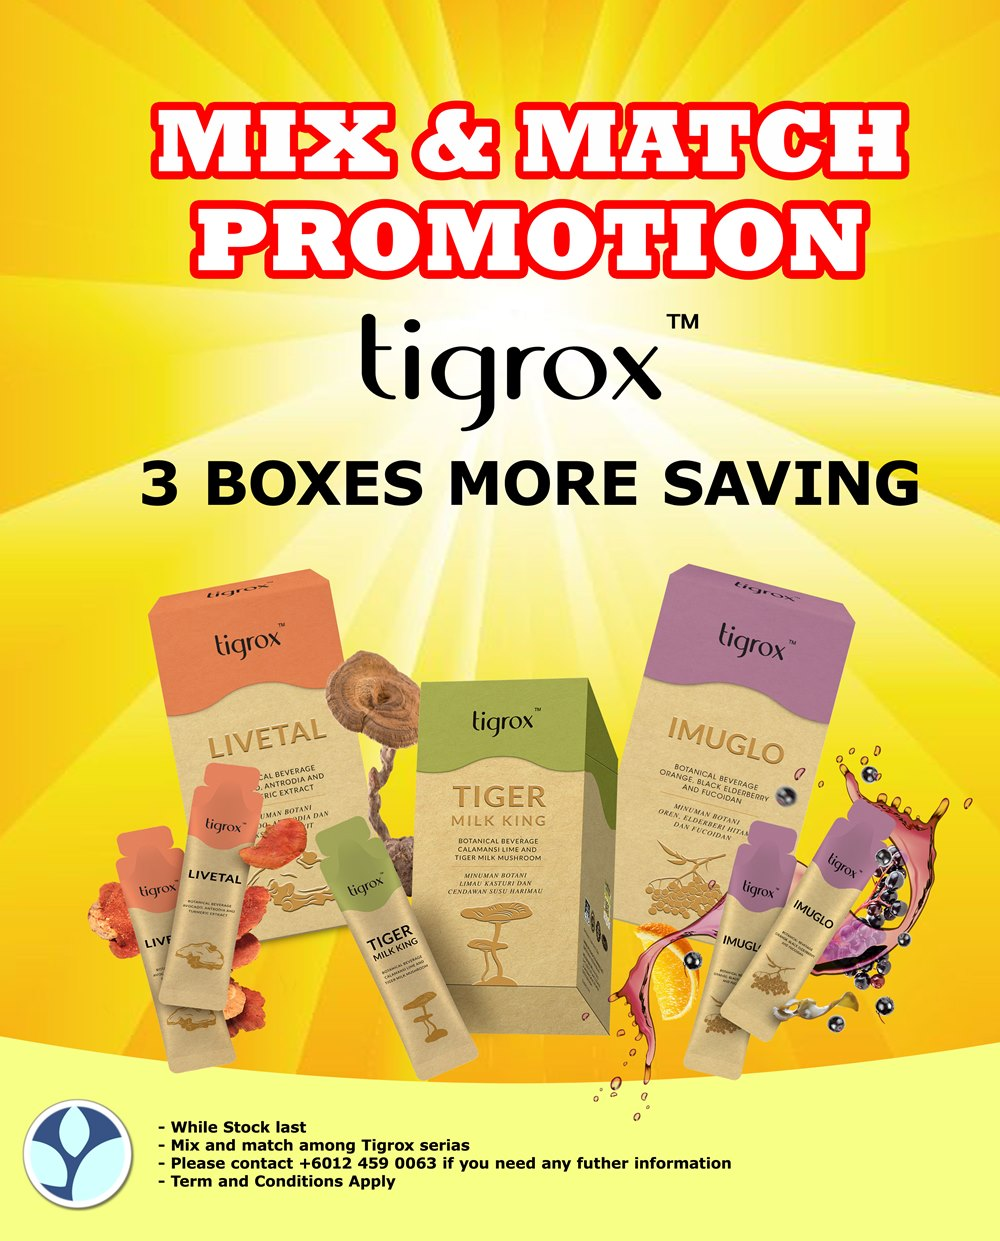 Tigrox Promotion